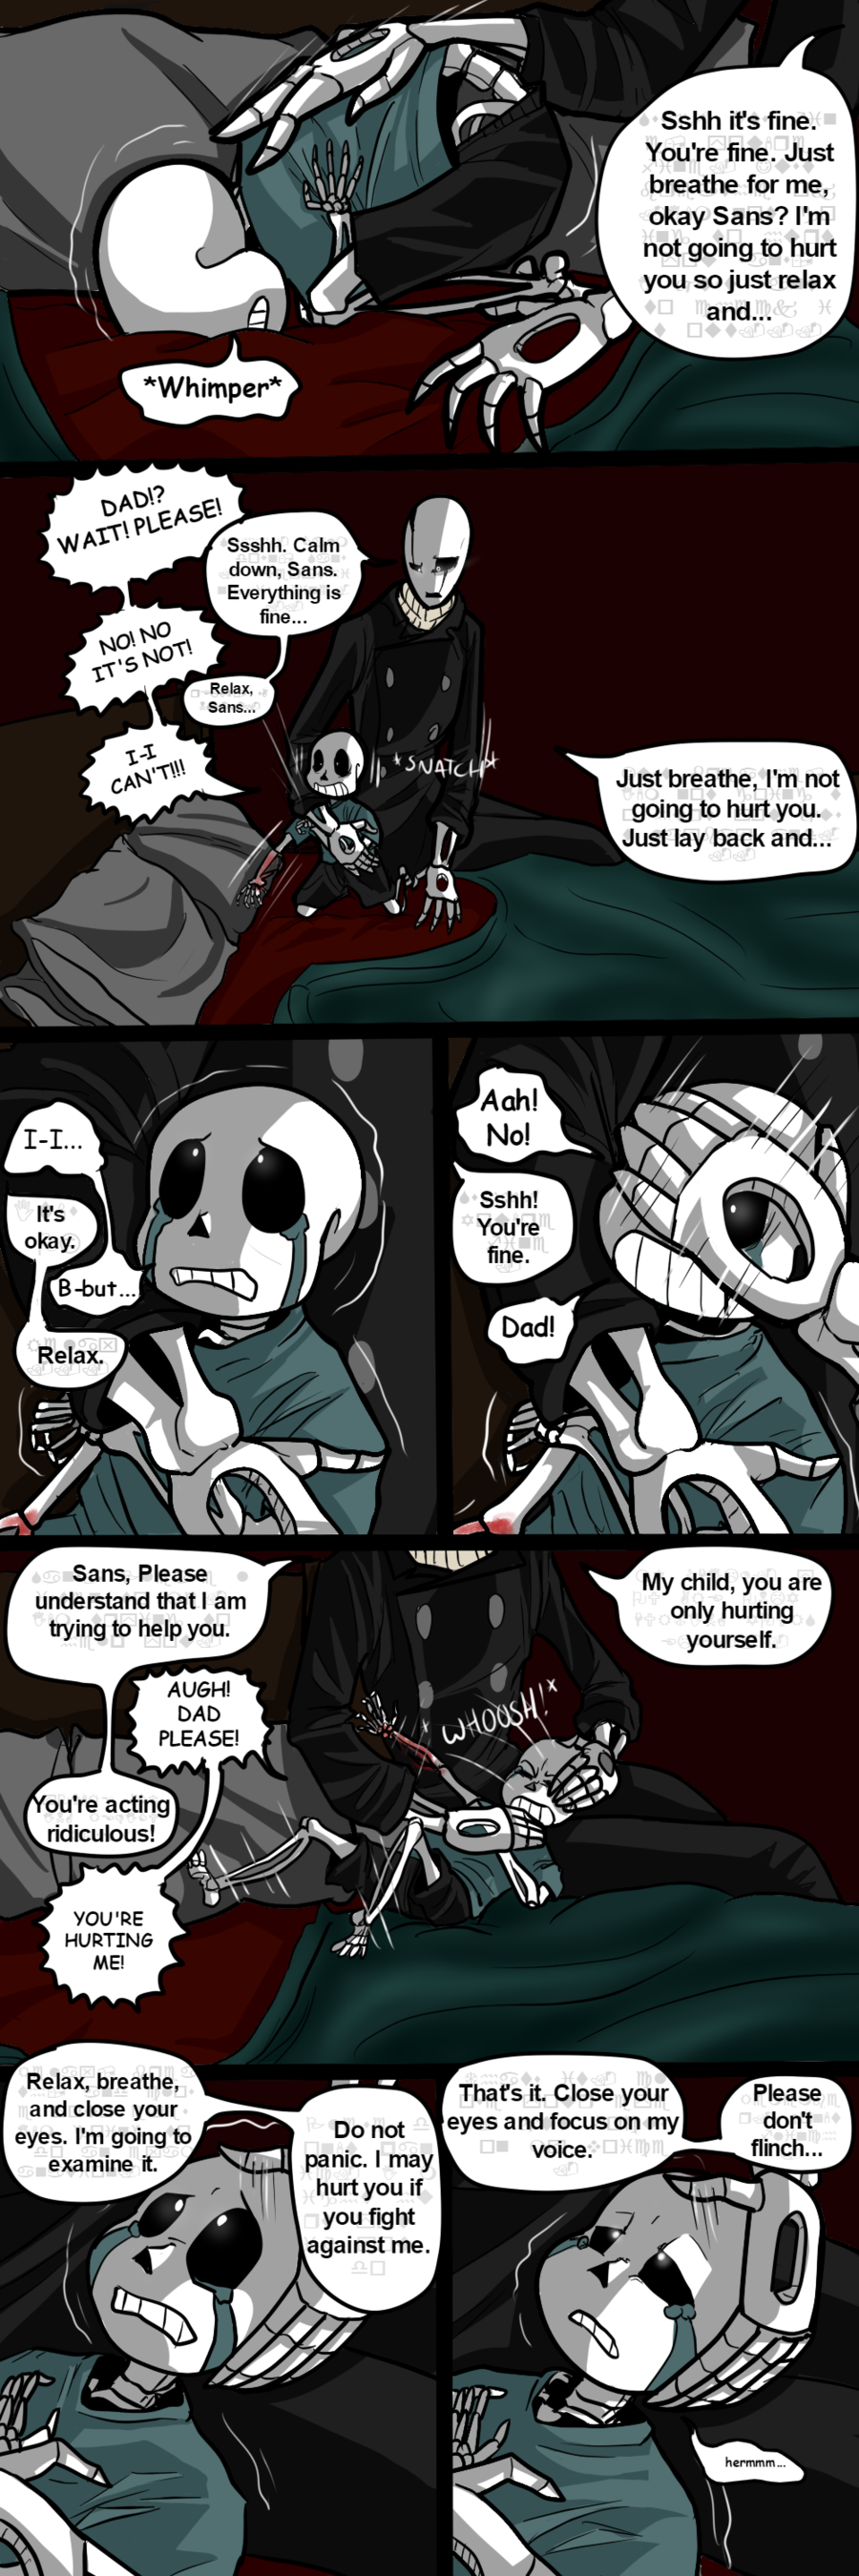 The Problem 5 (http://img06.deviantart.net/26db/i/2016/210/6/e/skelefam__don_t_have_to_hide_pt_5_by_thebombdiggity666-dabsa06.png)